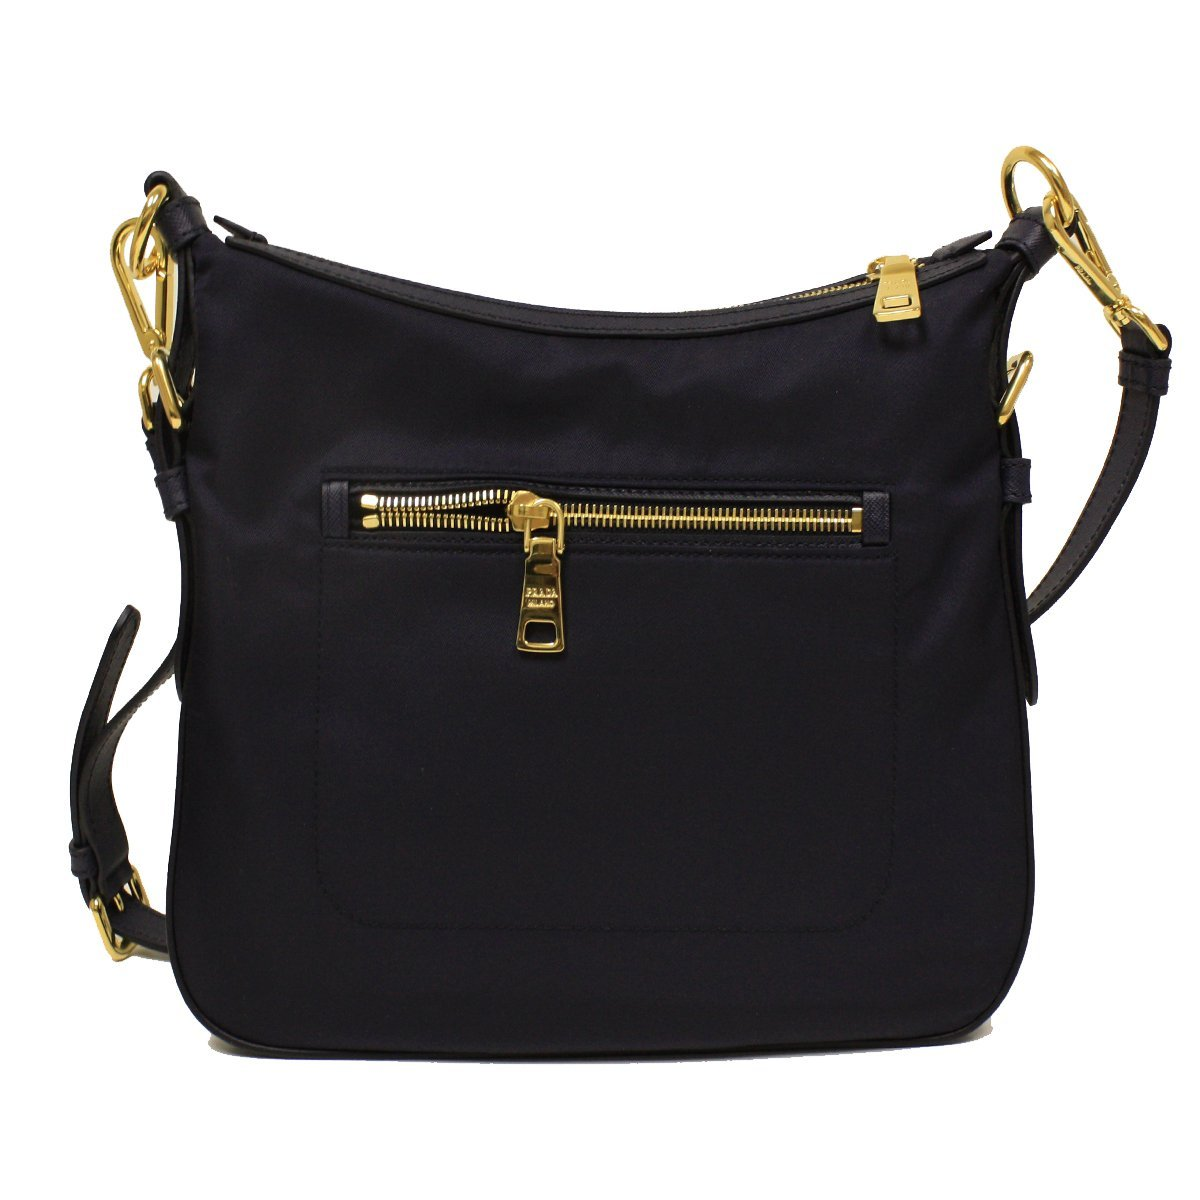 Prada BT0706 Navy Blue Tessuto Saffian Nylon and Leather Crossbody  Messenger Bag  Amazon.co.uk  Shoes   Bags 42692822d1664